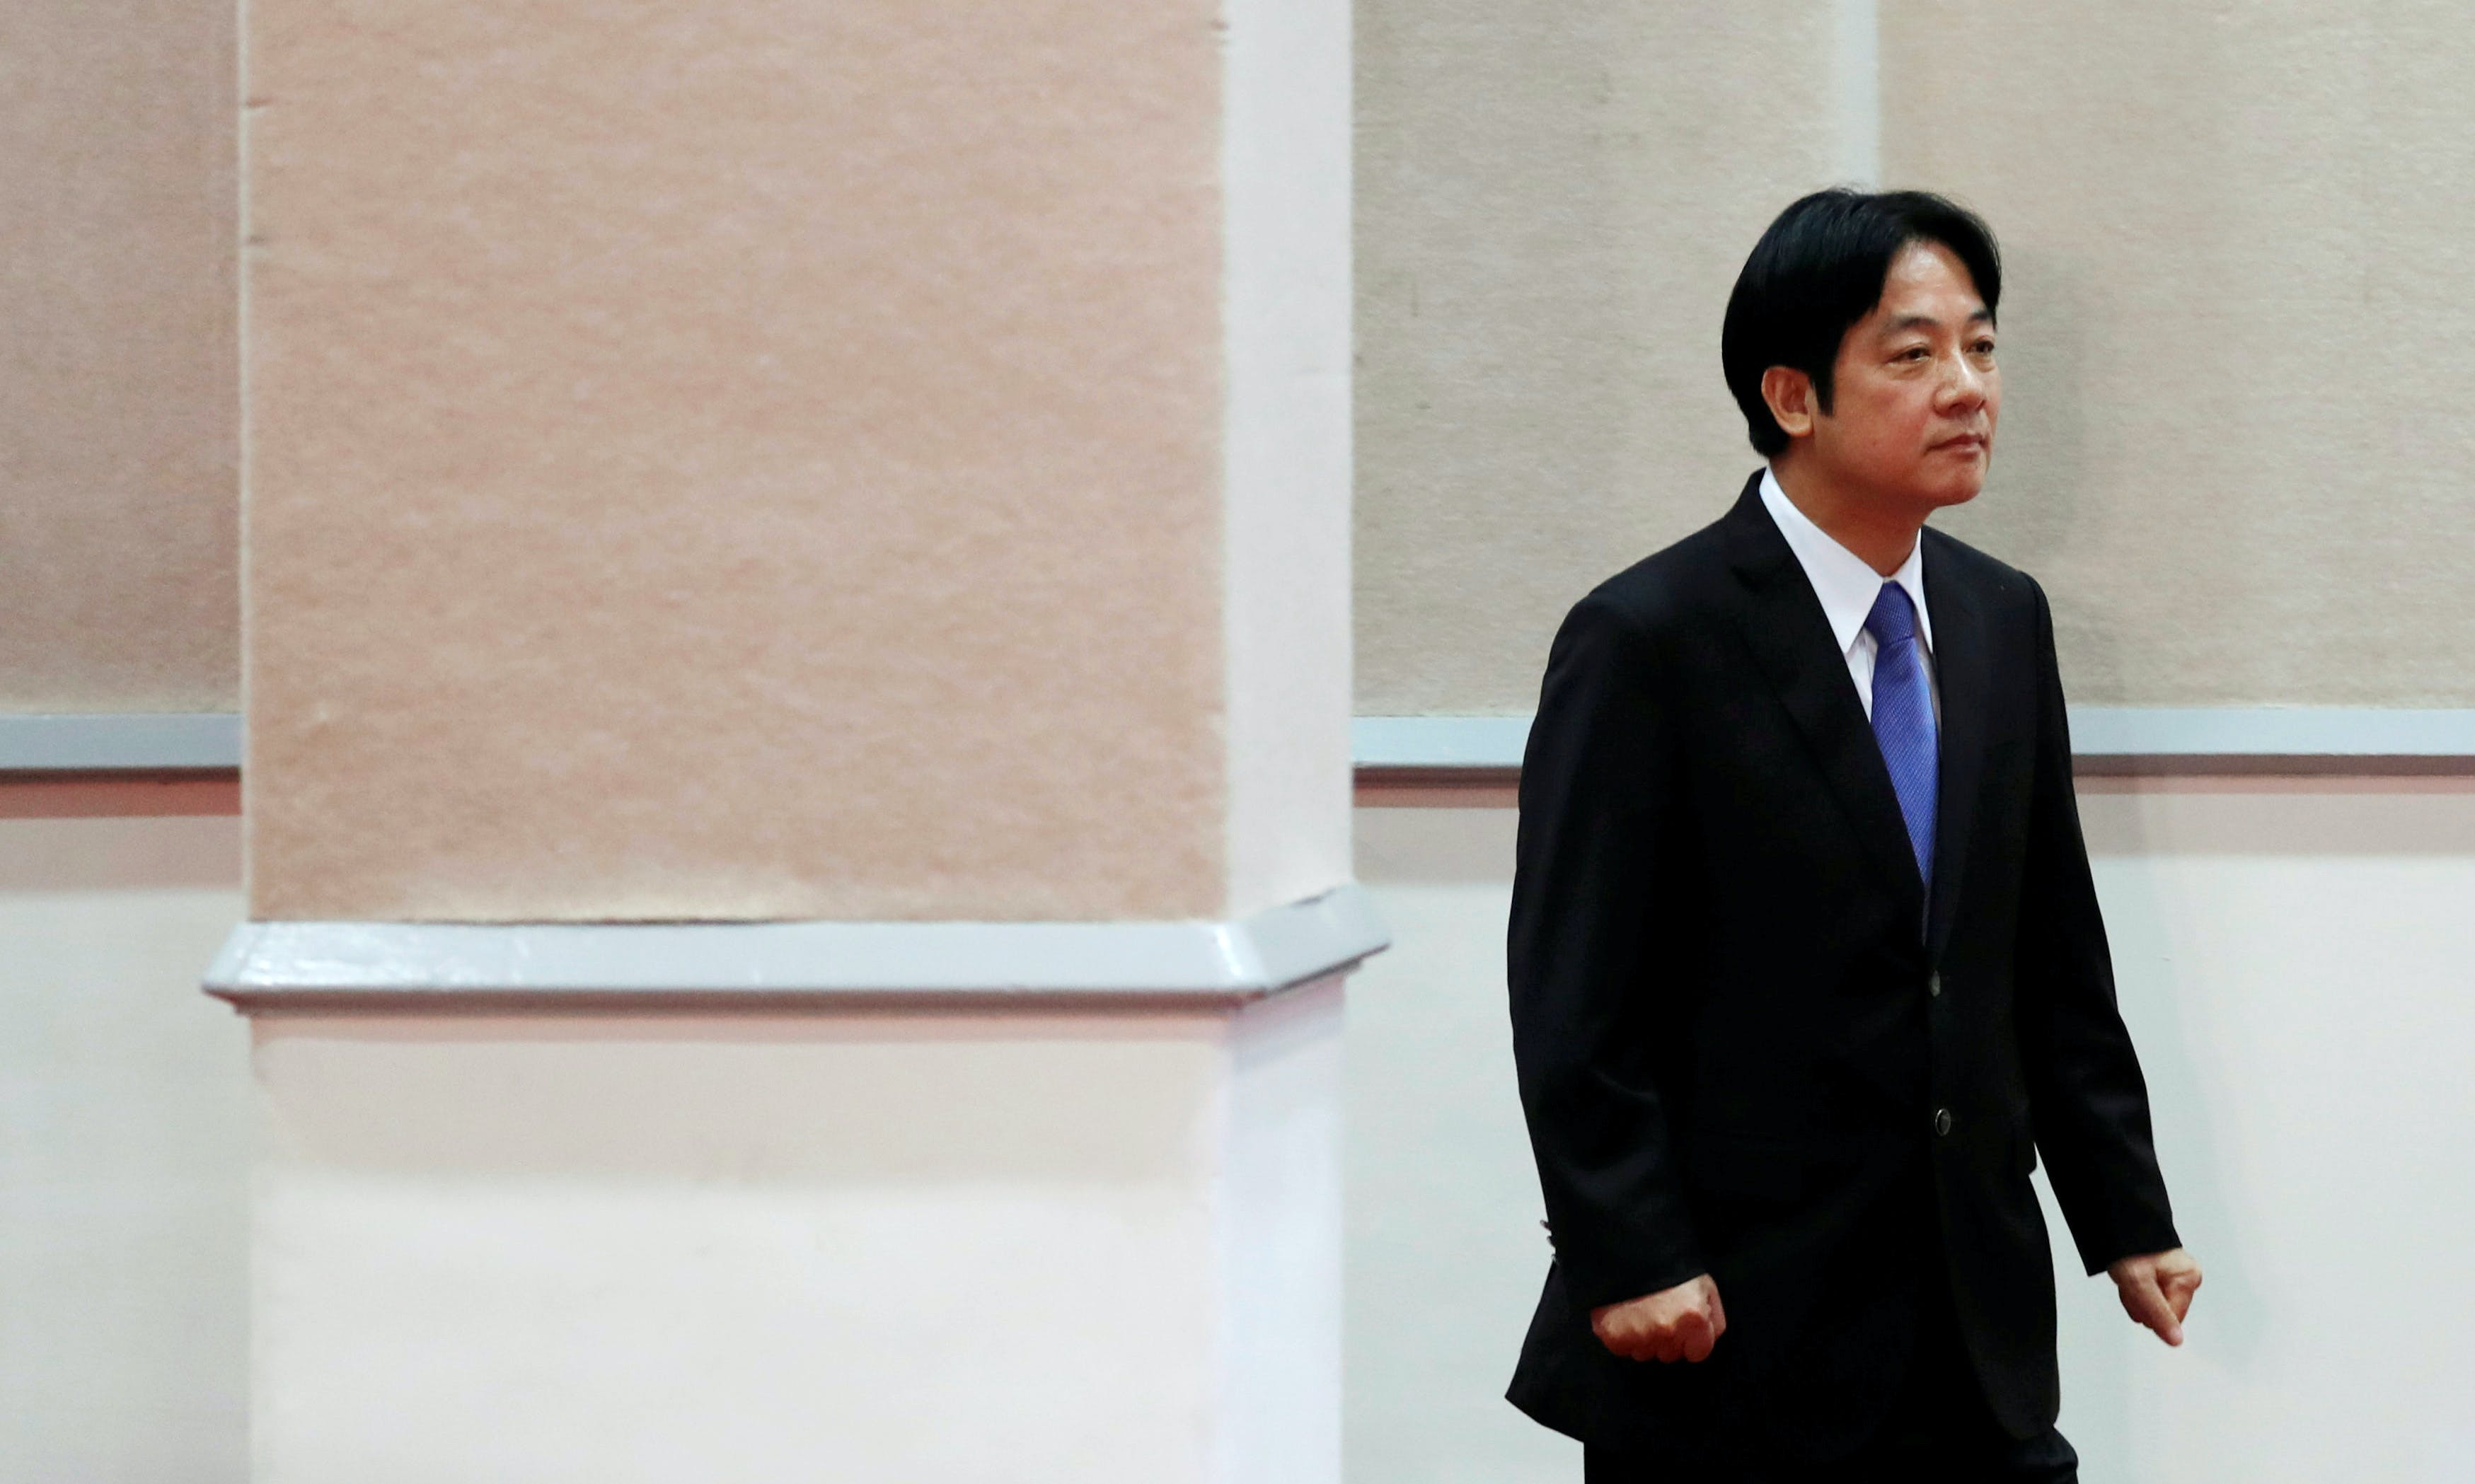 Taiwan News: Premier Lai to Lead Mass Cabinet Resignations as Budget Is Passed